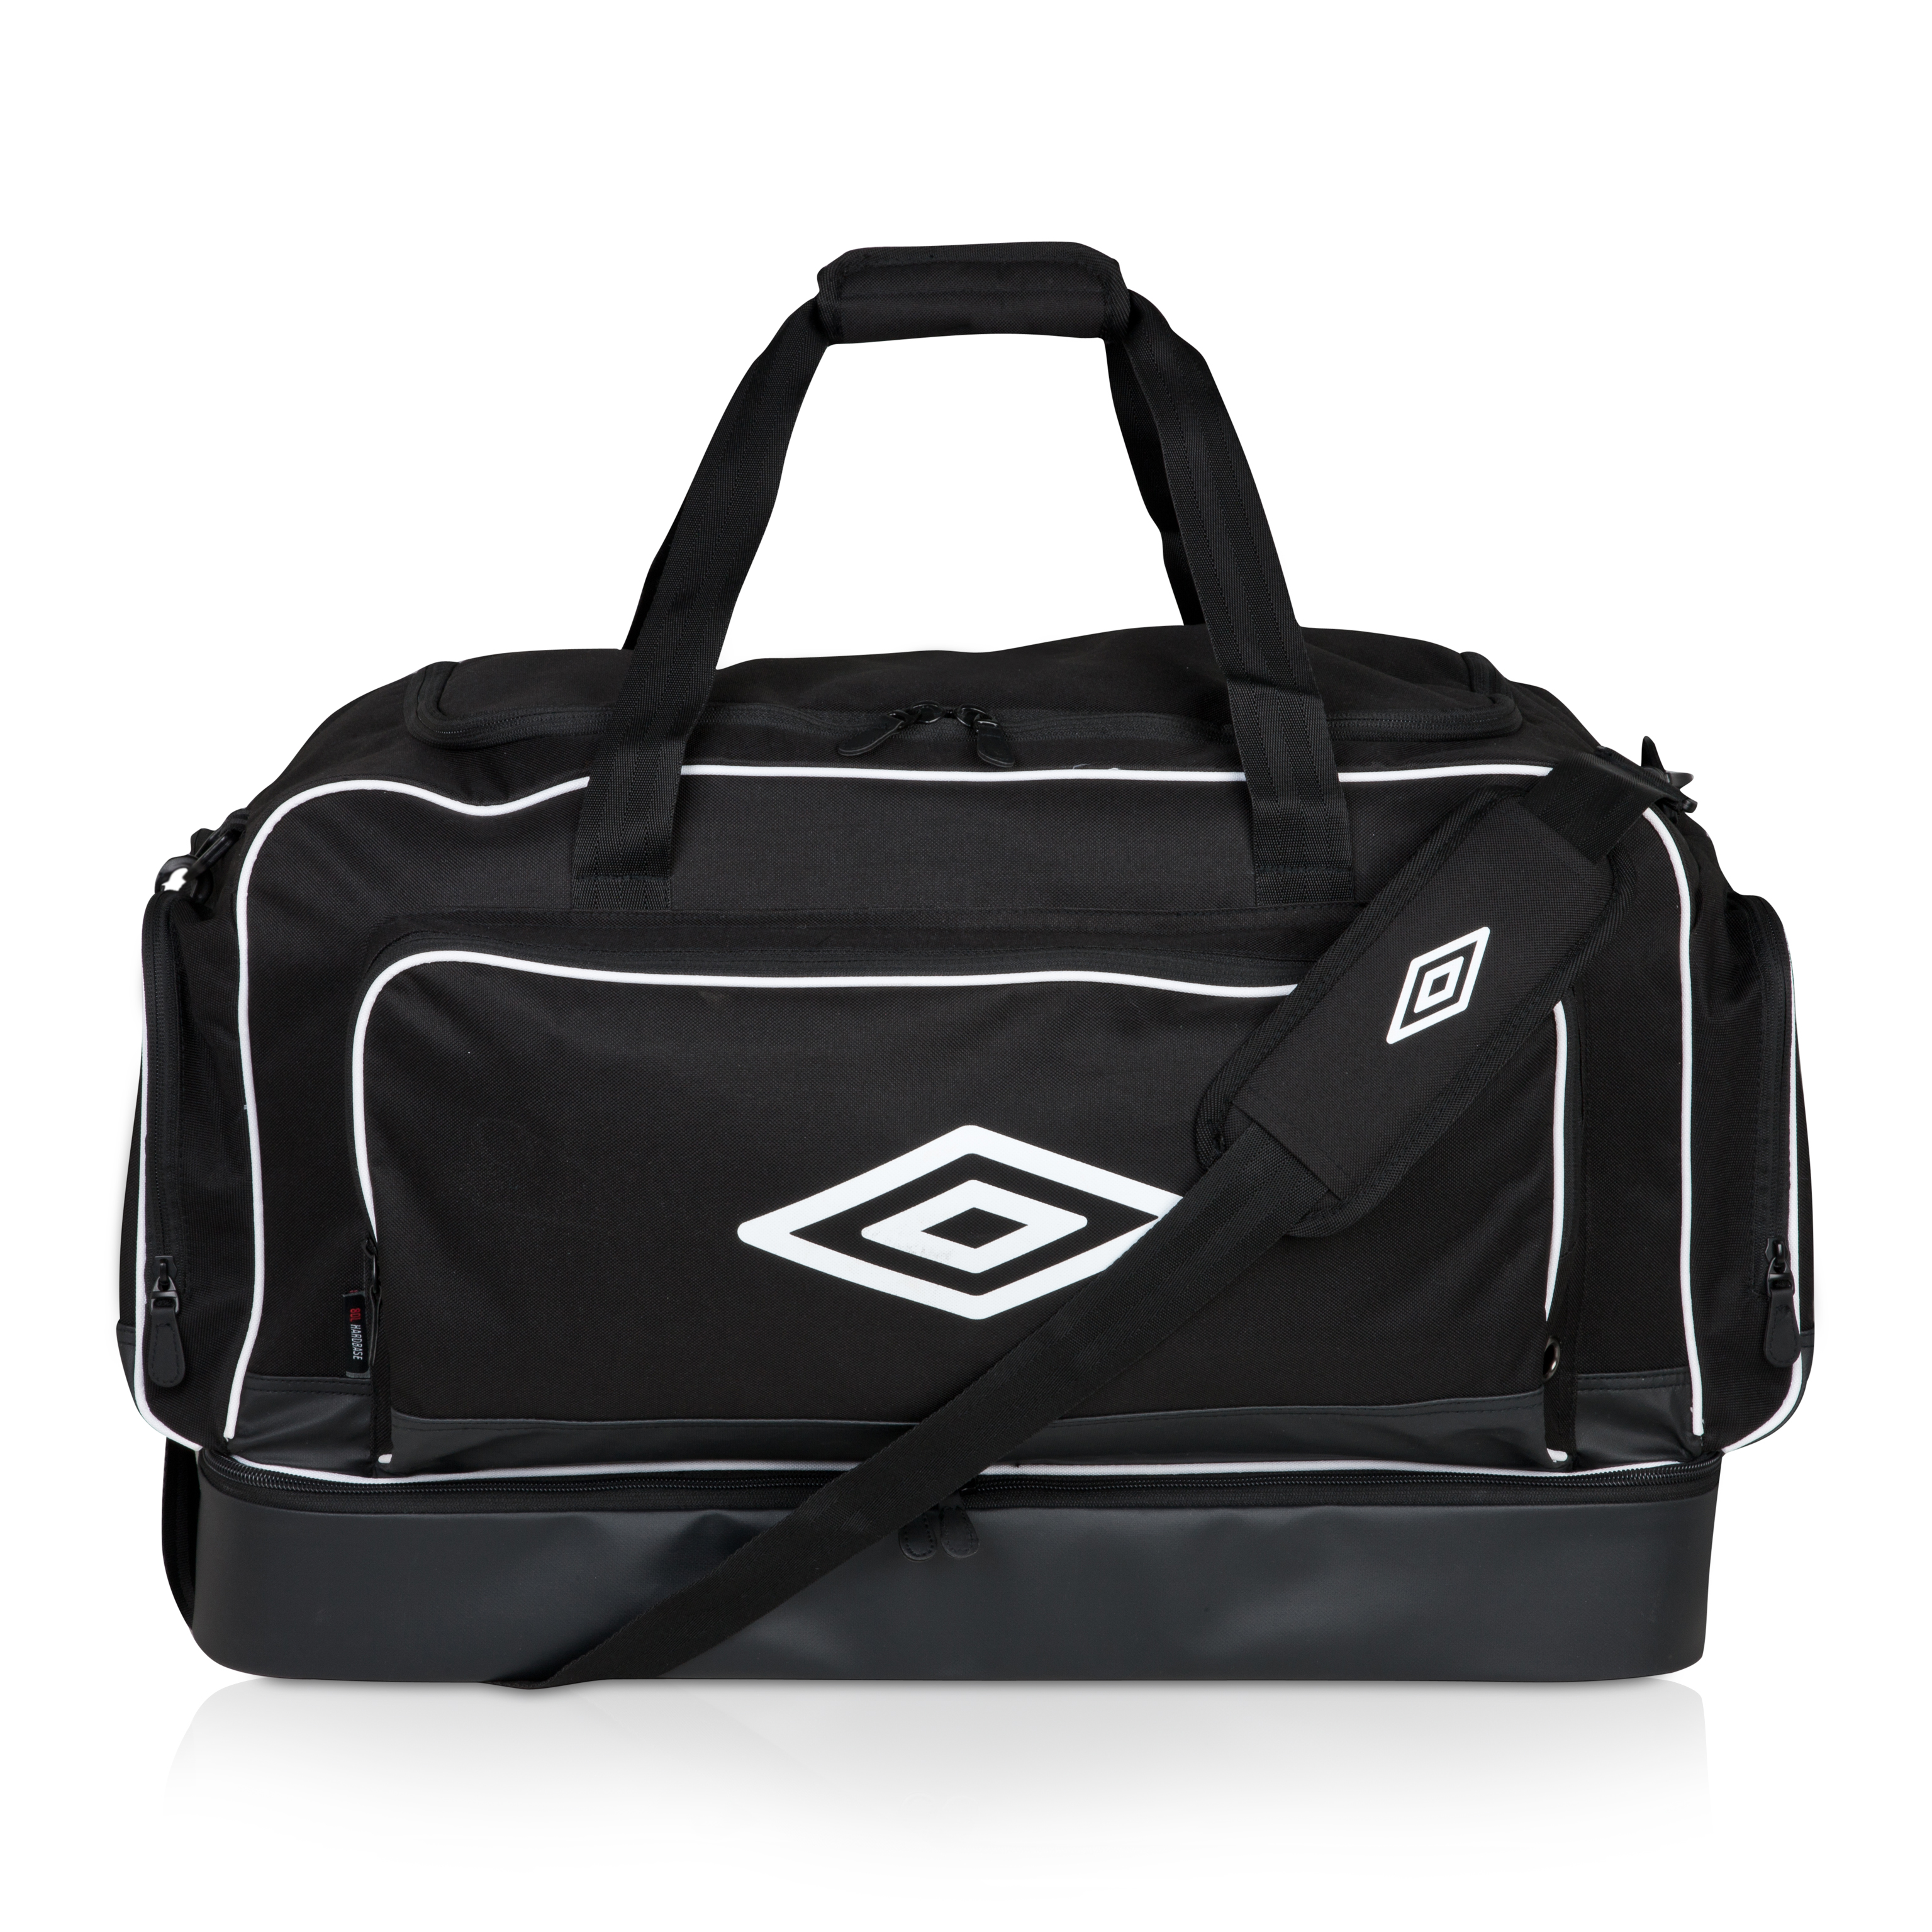 Umbro Medium Hardbase Holdall - Black / White